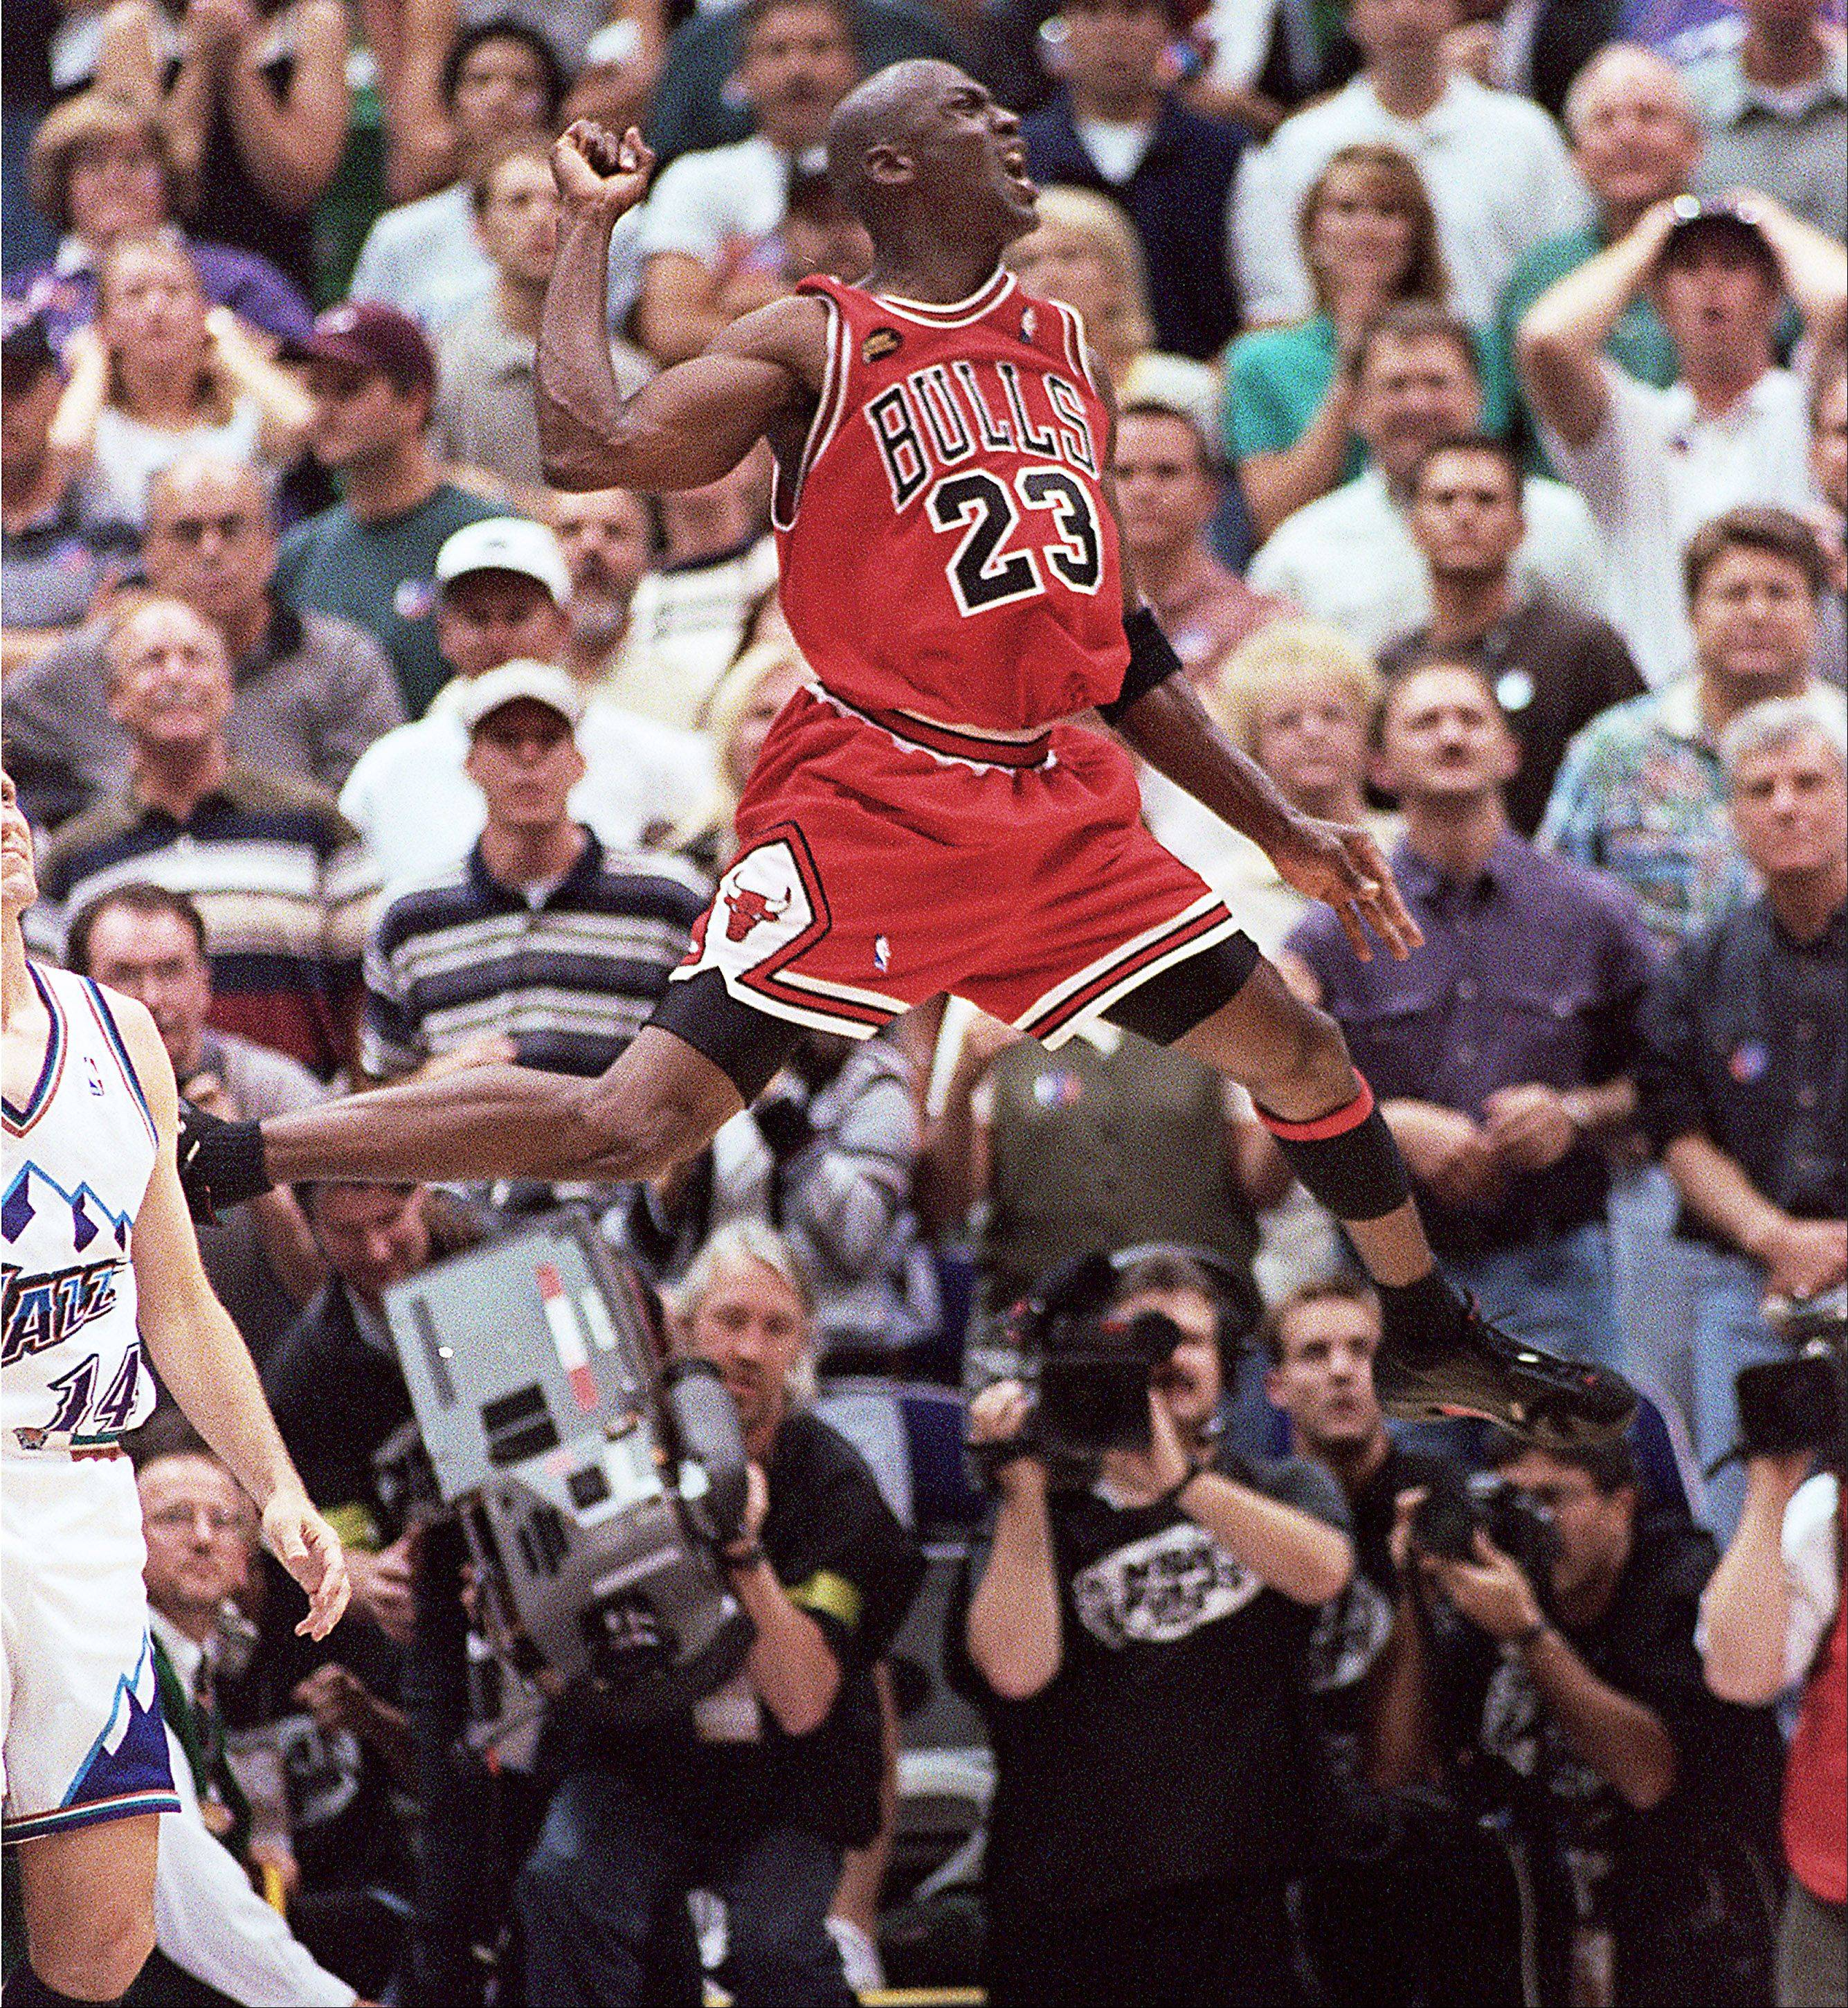 Michael Jordan jumps for joy as the Chicago Bulls win their second three-peat during the '90s against the Utah Jazz in the 1998 NBA Finals.